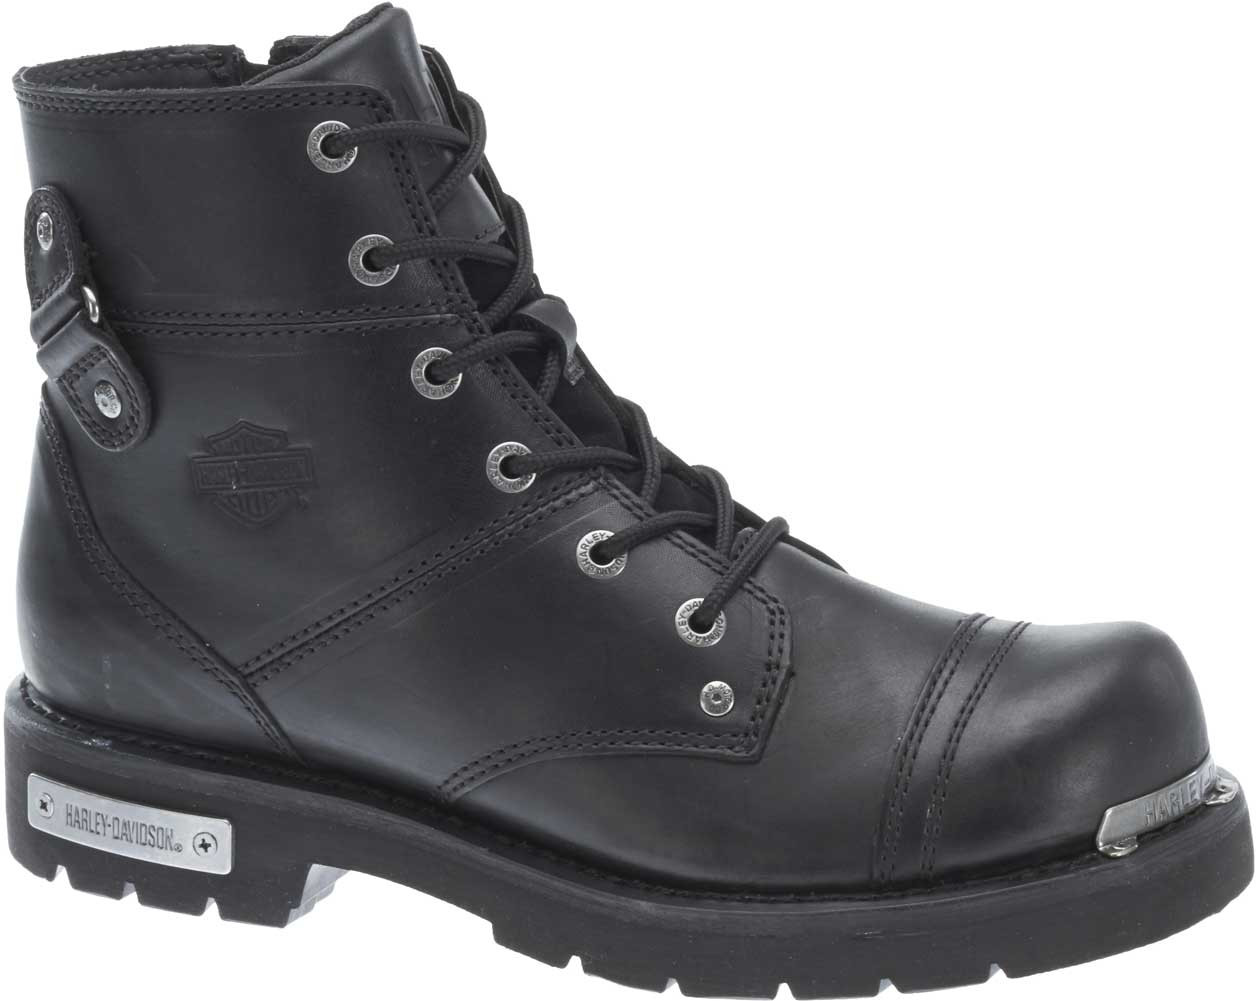 16af4ca674c2 Harley-Davidson® Men s Fireside Side-Zip Motorcycle Boots Black or Stone  D96103 - Wisconsin Harley-Davidson